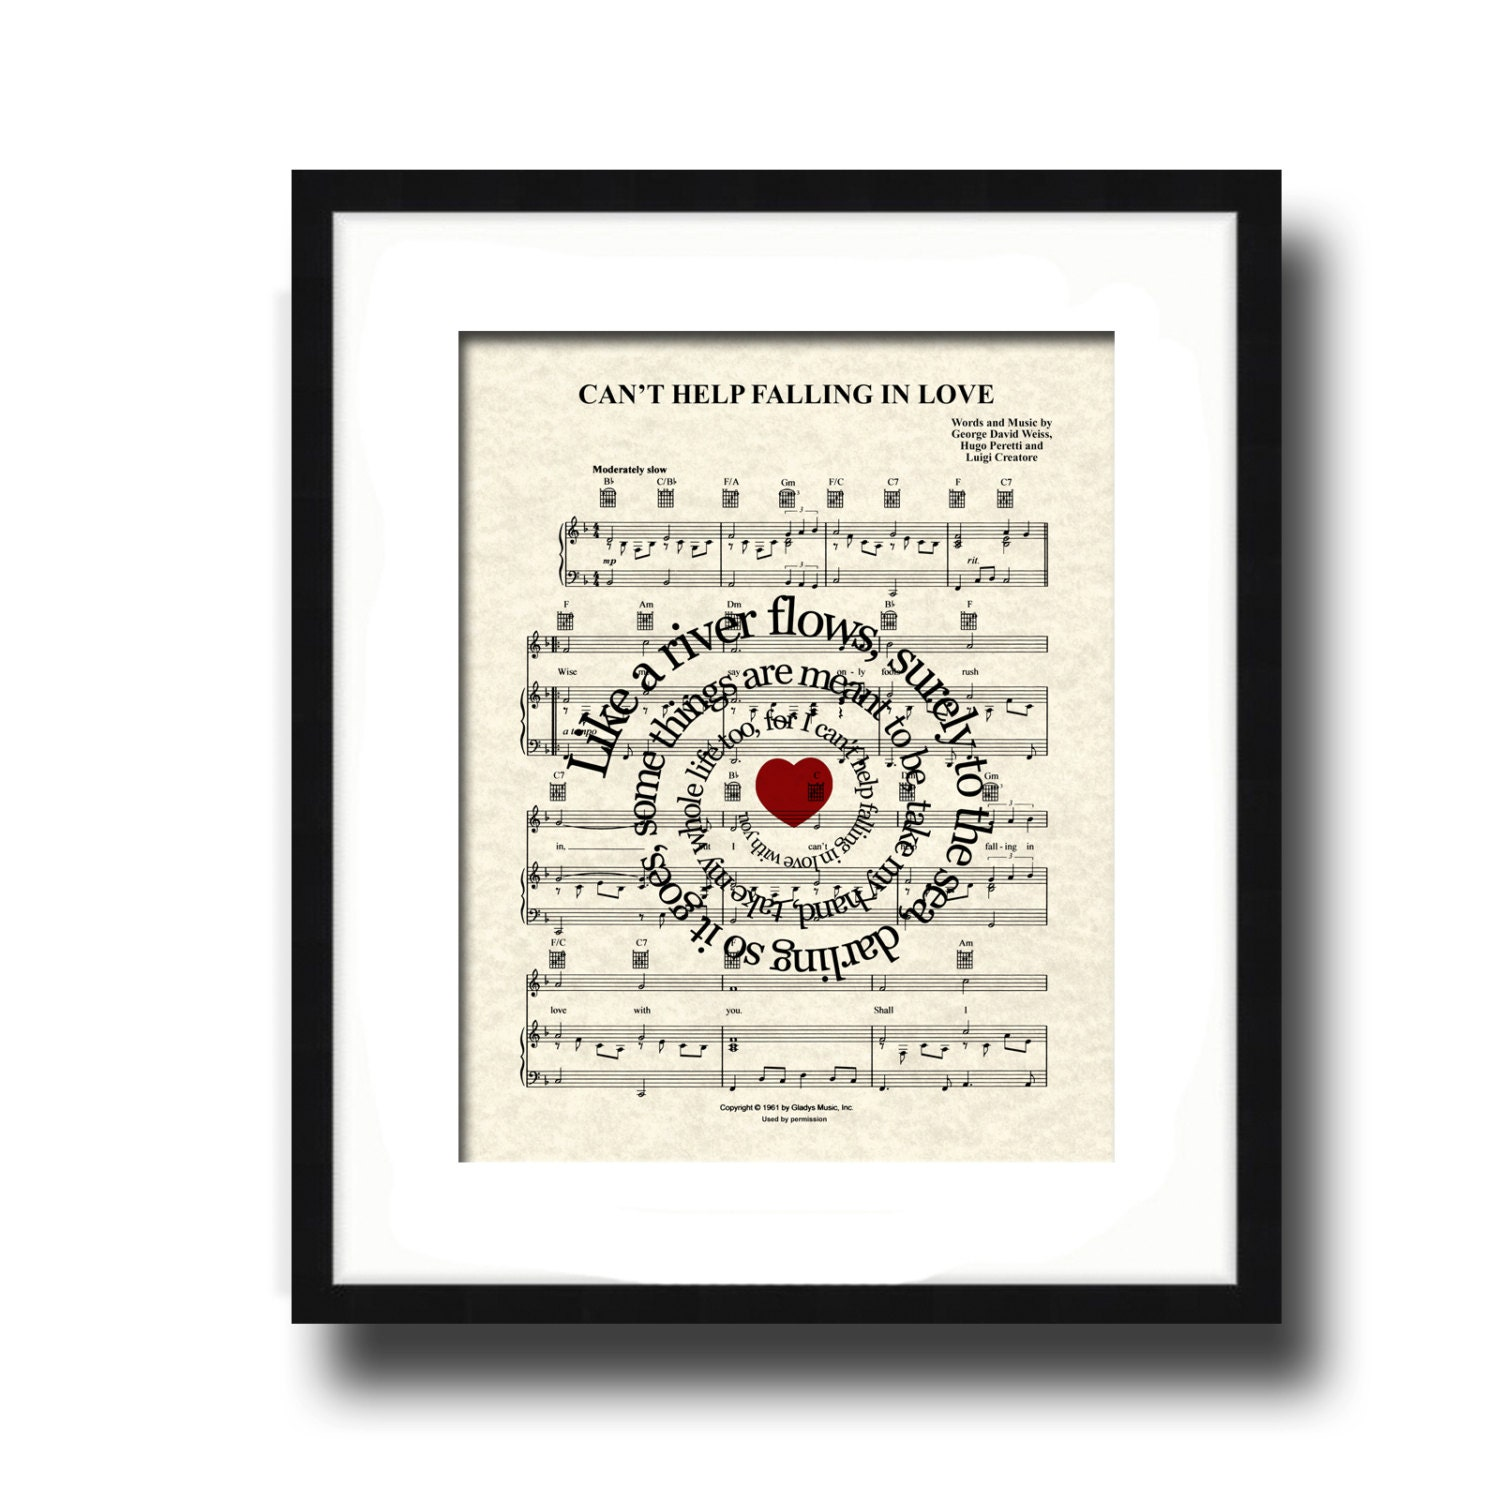 Dancing On My Own Sheet Music With Lyrics: Can't Help Falling In Love Sheet Music Art Print Elvis